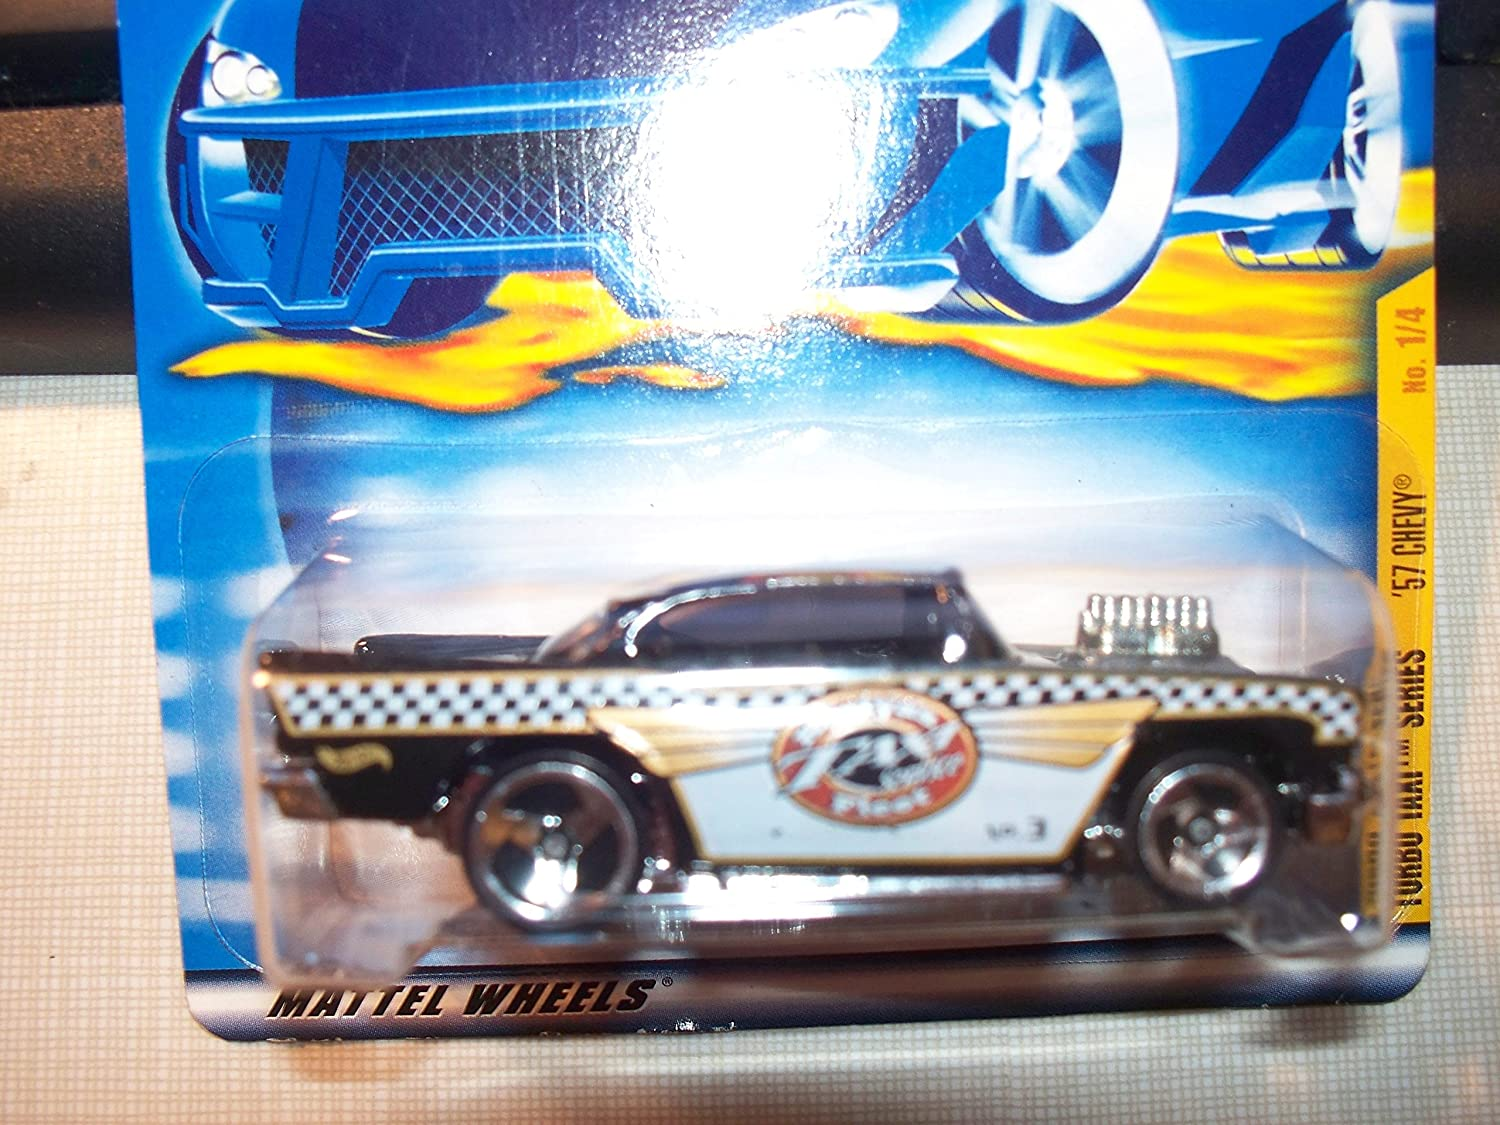 Turbo Taxi Series #1 57 Chevy #2001-53 Collectible Collector Car Mattel Hot Wheels